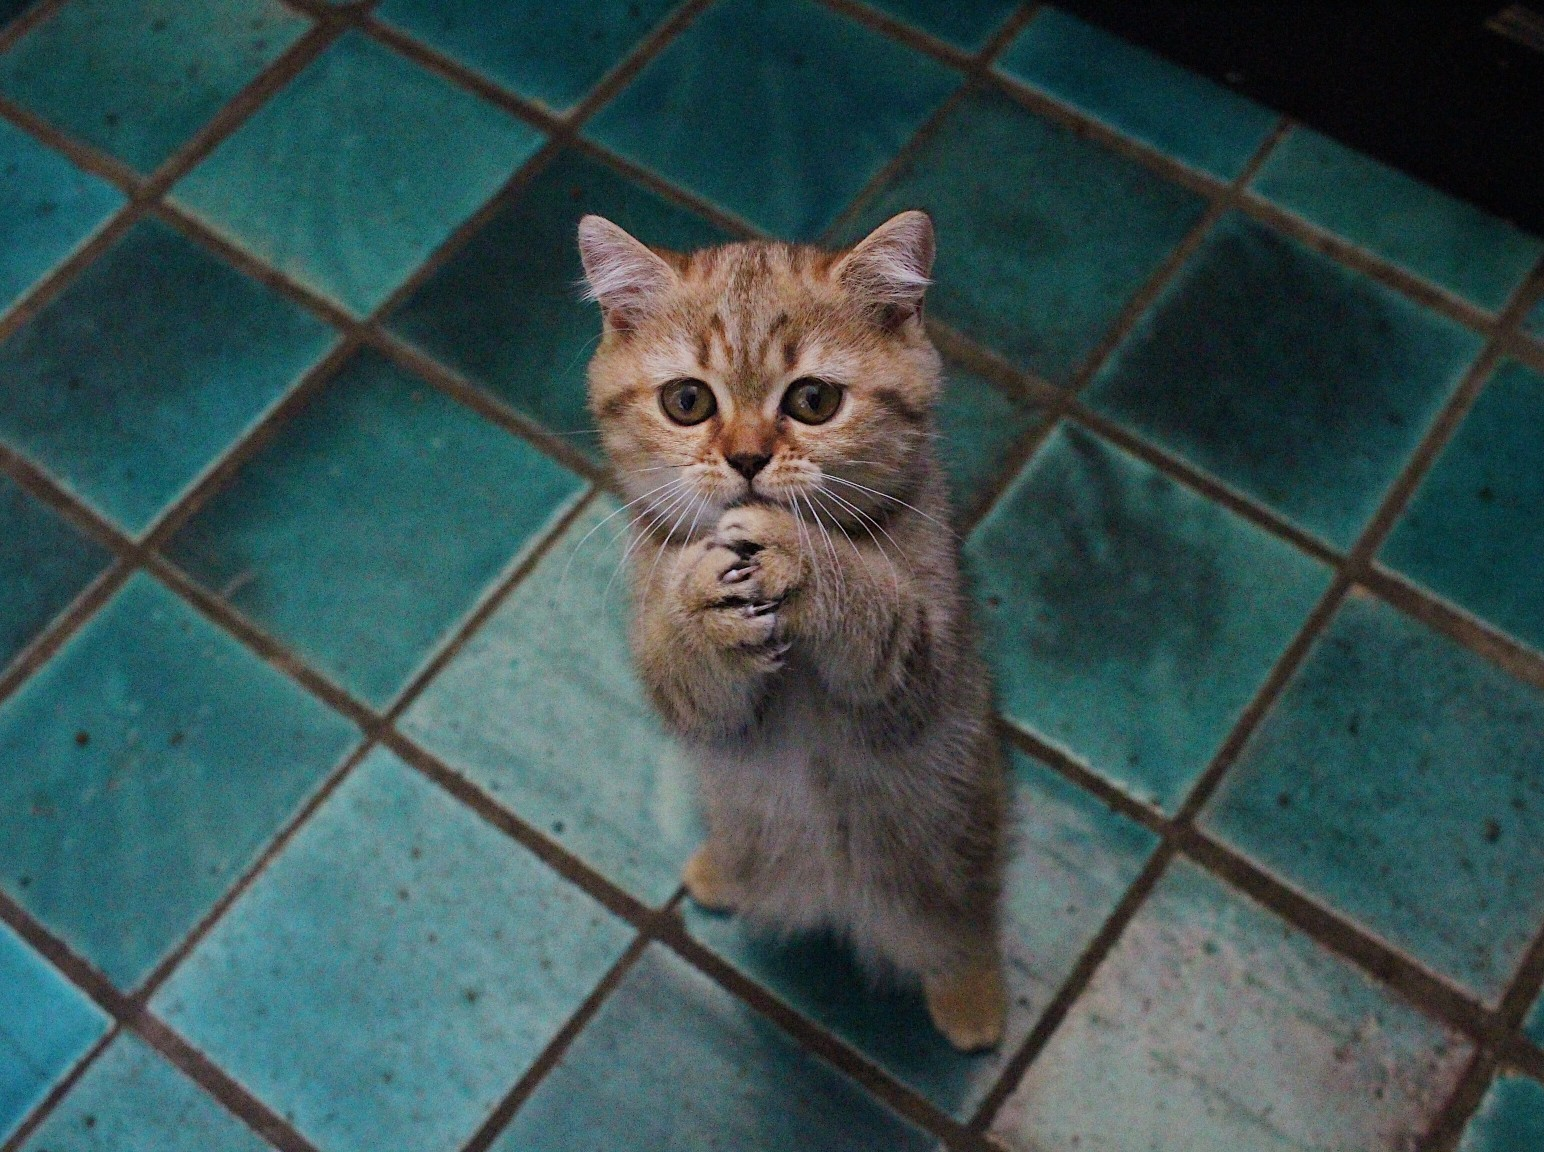 7 Things You Should Know Before Going to Buy a Kitten